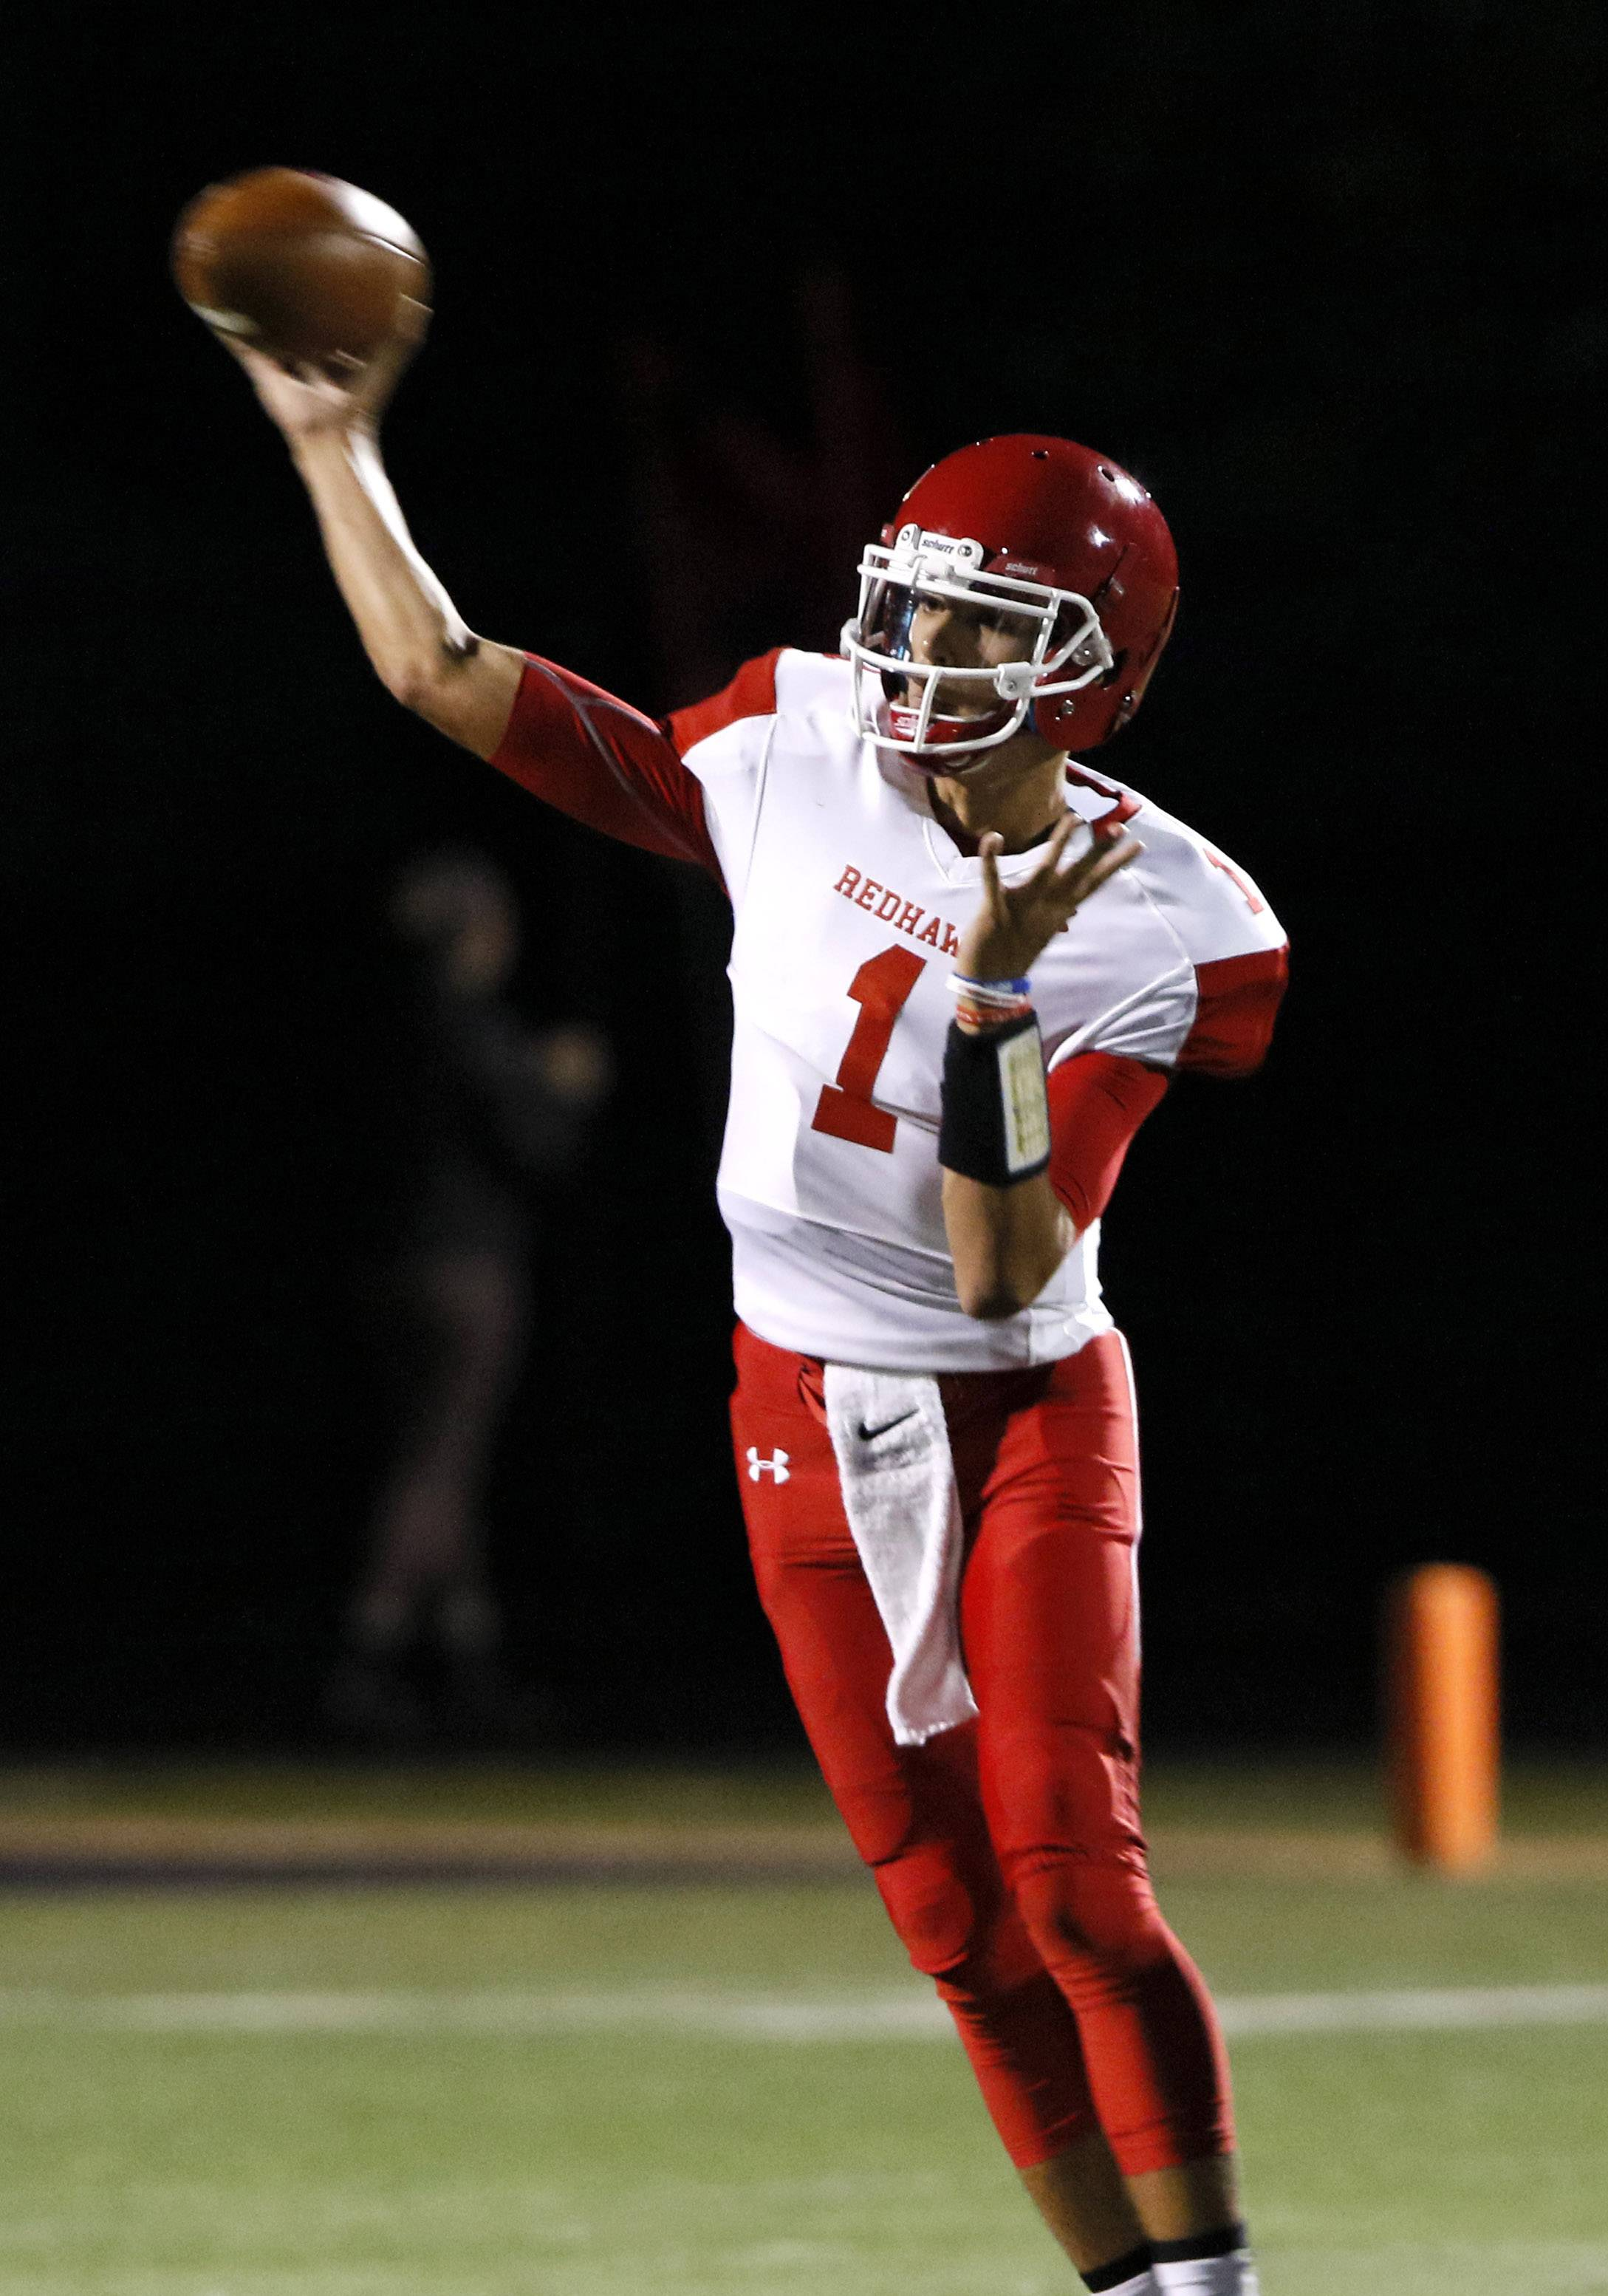 Naperville Central quarterback Payton Thorne fires a pass against Glenbard North.